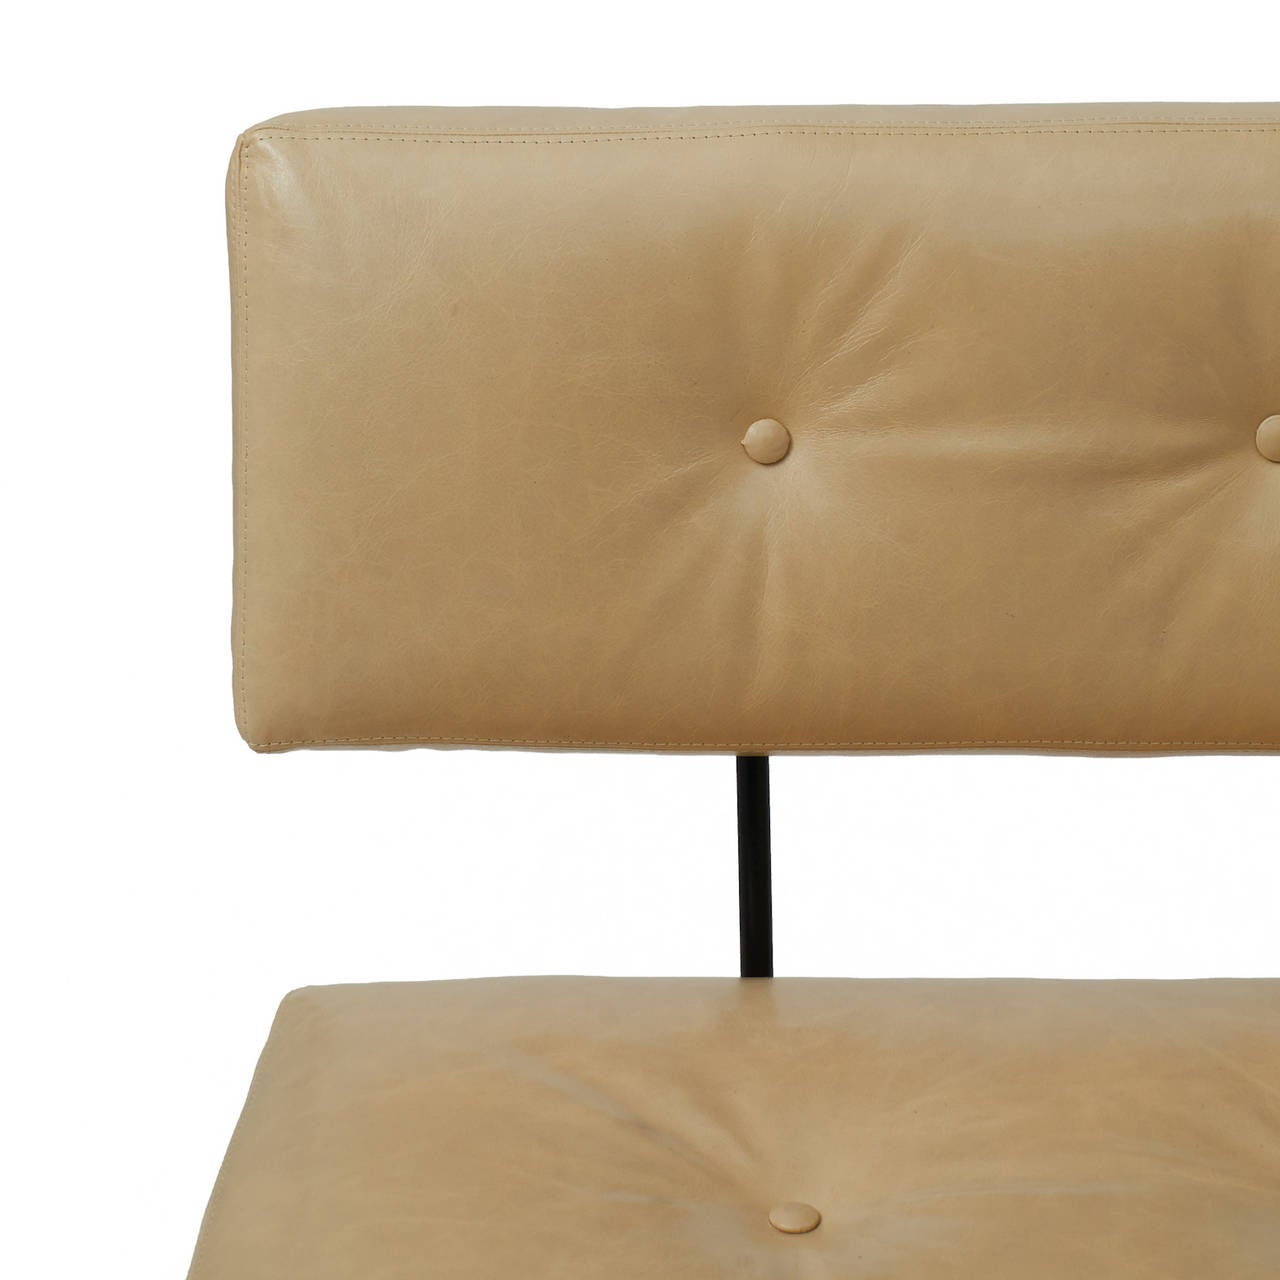 Leather Norman Cherner, Sofa For Sale